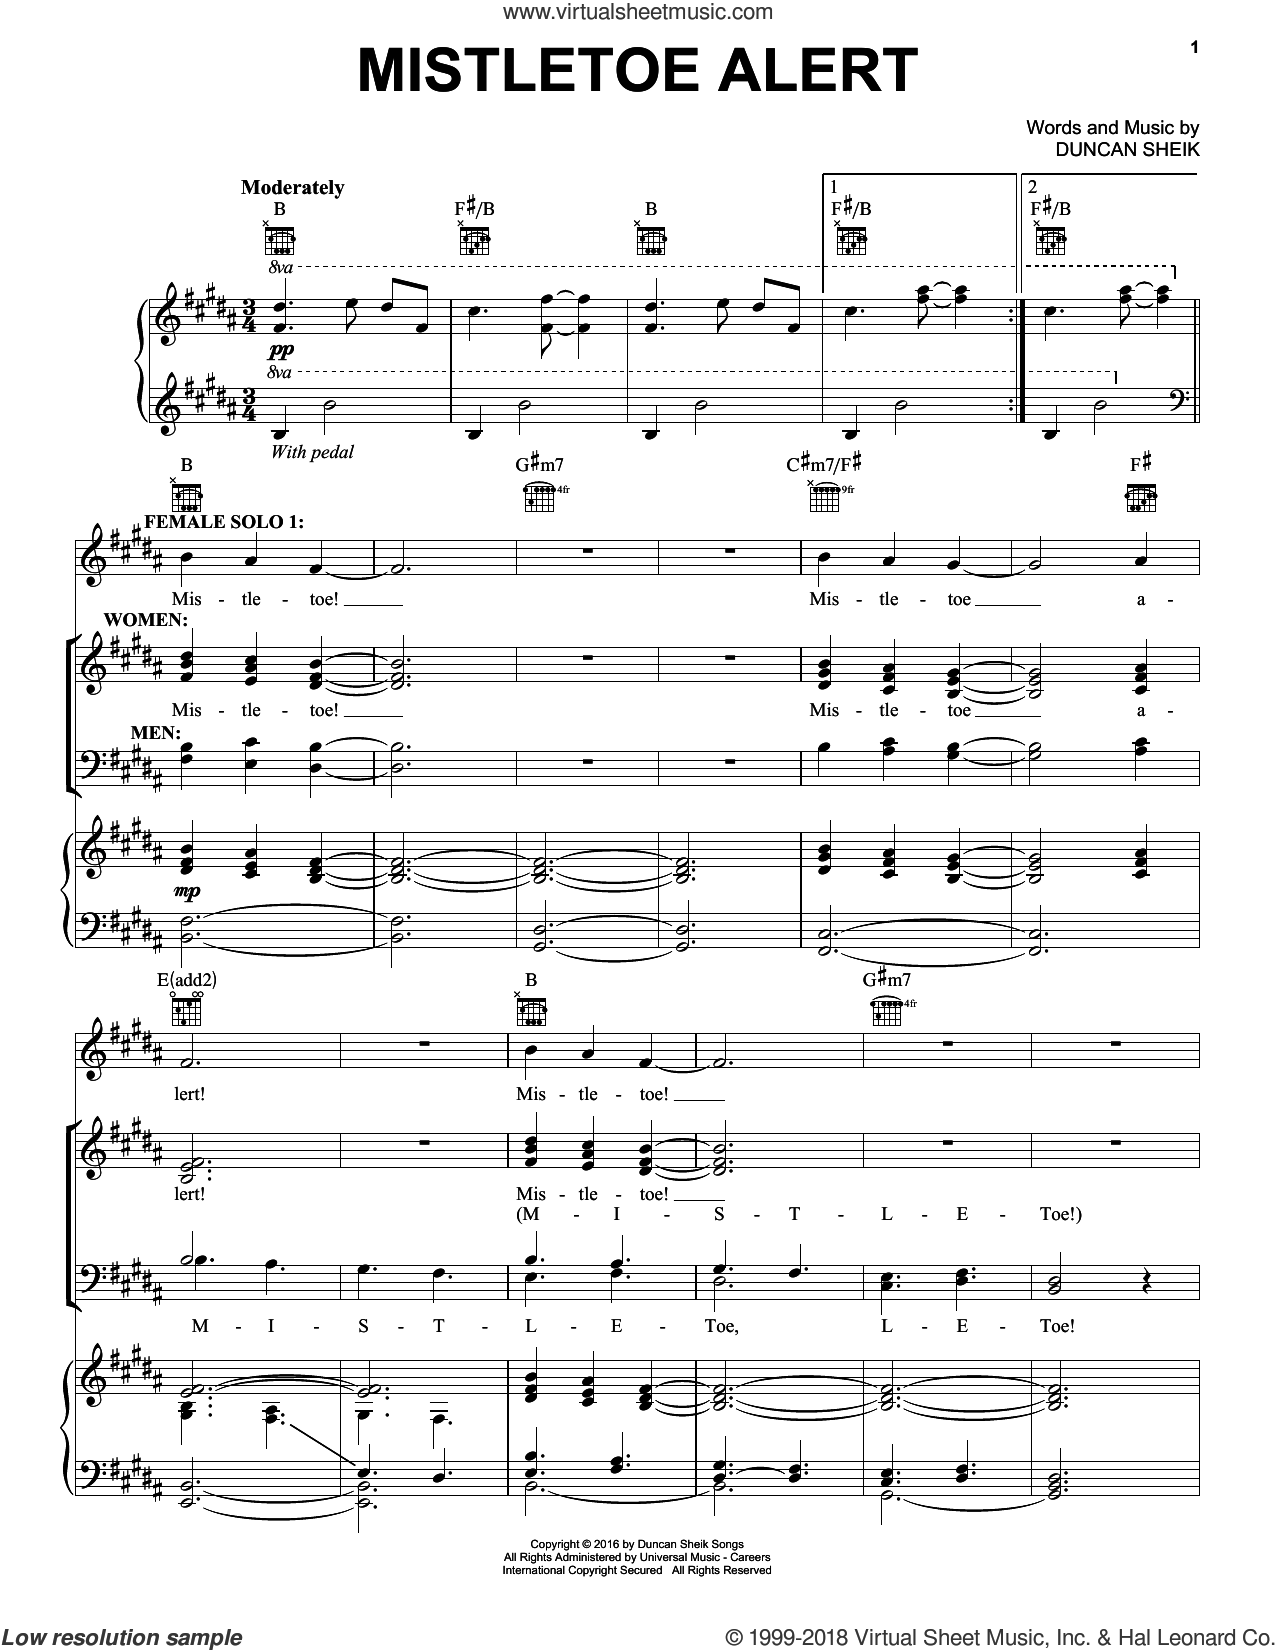 Mistletoe Alert sheet music for voice, piano or guitar by Duncan Sheik, intermediate skill level